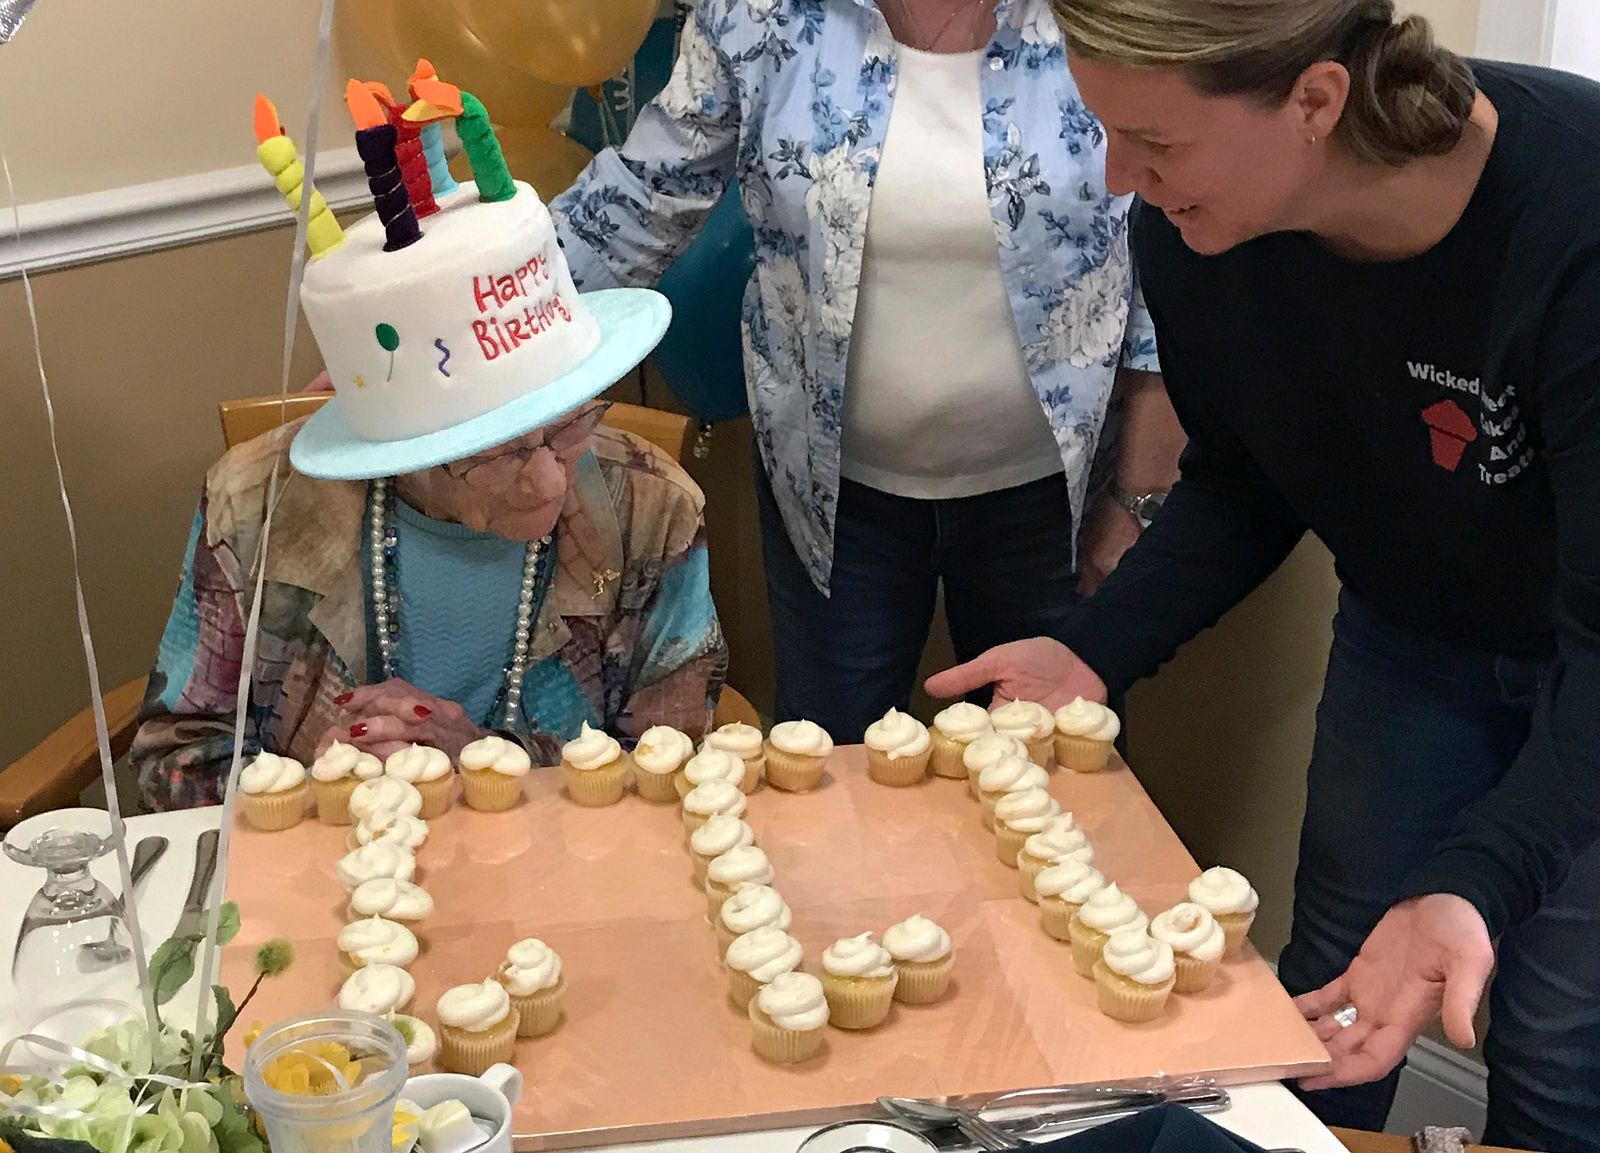 In this photo provided by Tony Venti, Hazel Nilson celebrates her 111th birthday with peach cupcakes, Wednesday, Aug. 21, 2019, at Sunapee Cove in Sunapee, N.H. (Tony Venti via AP)